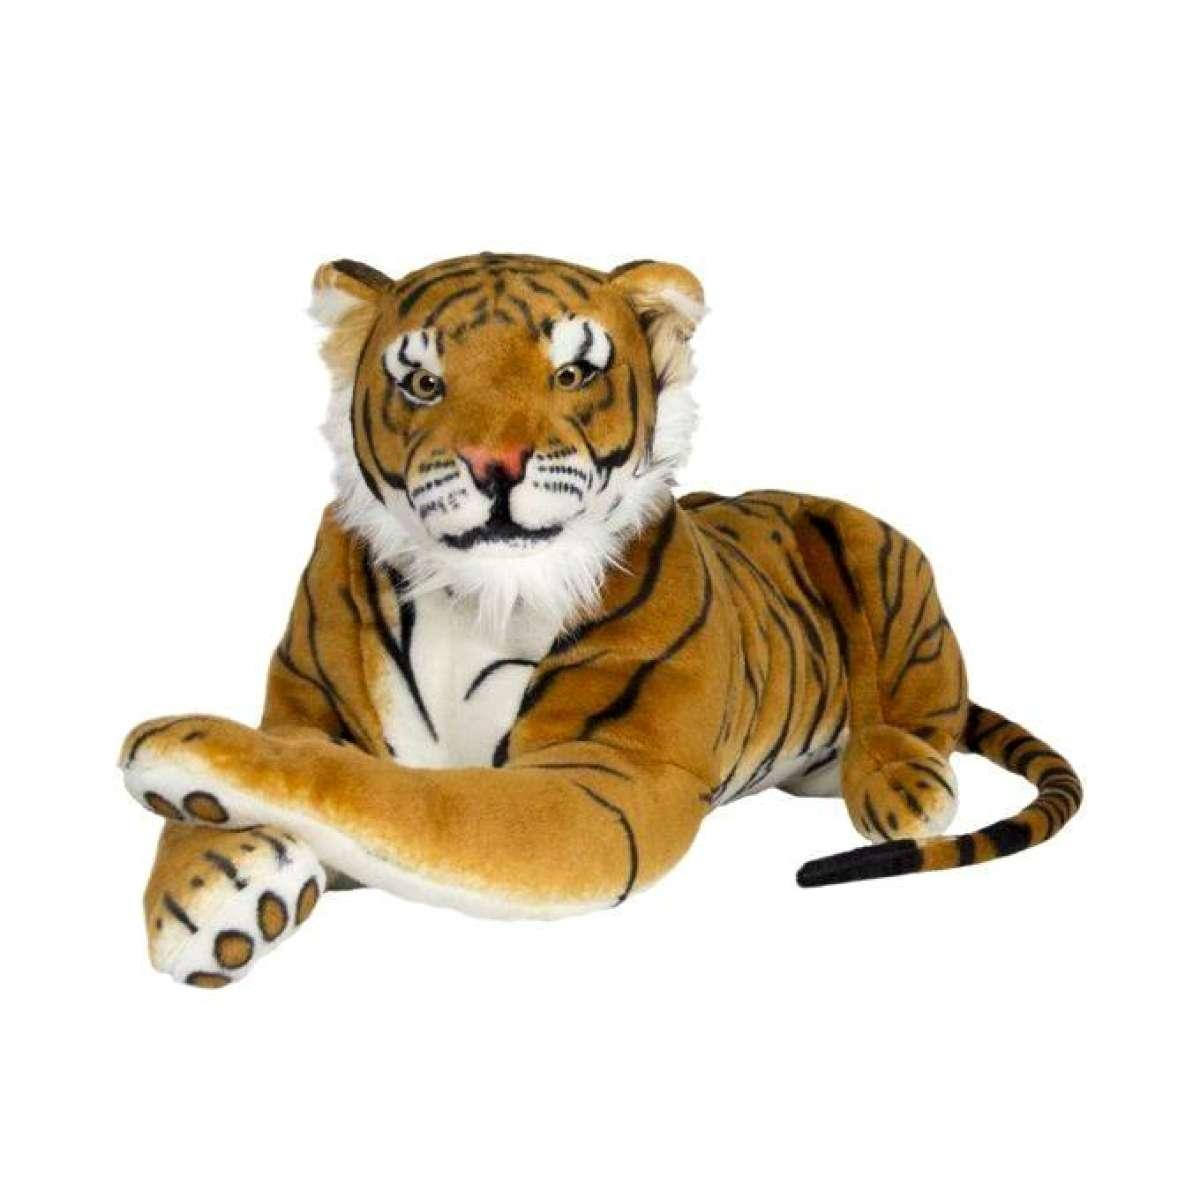 Tiger Stuffed Toy - Multi-color